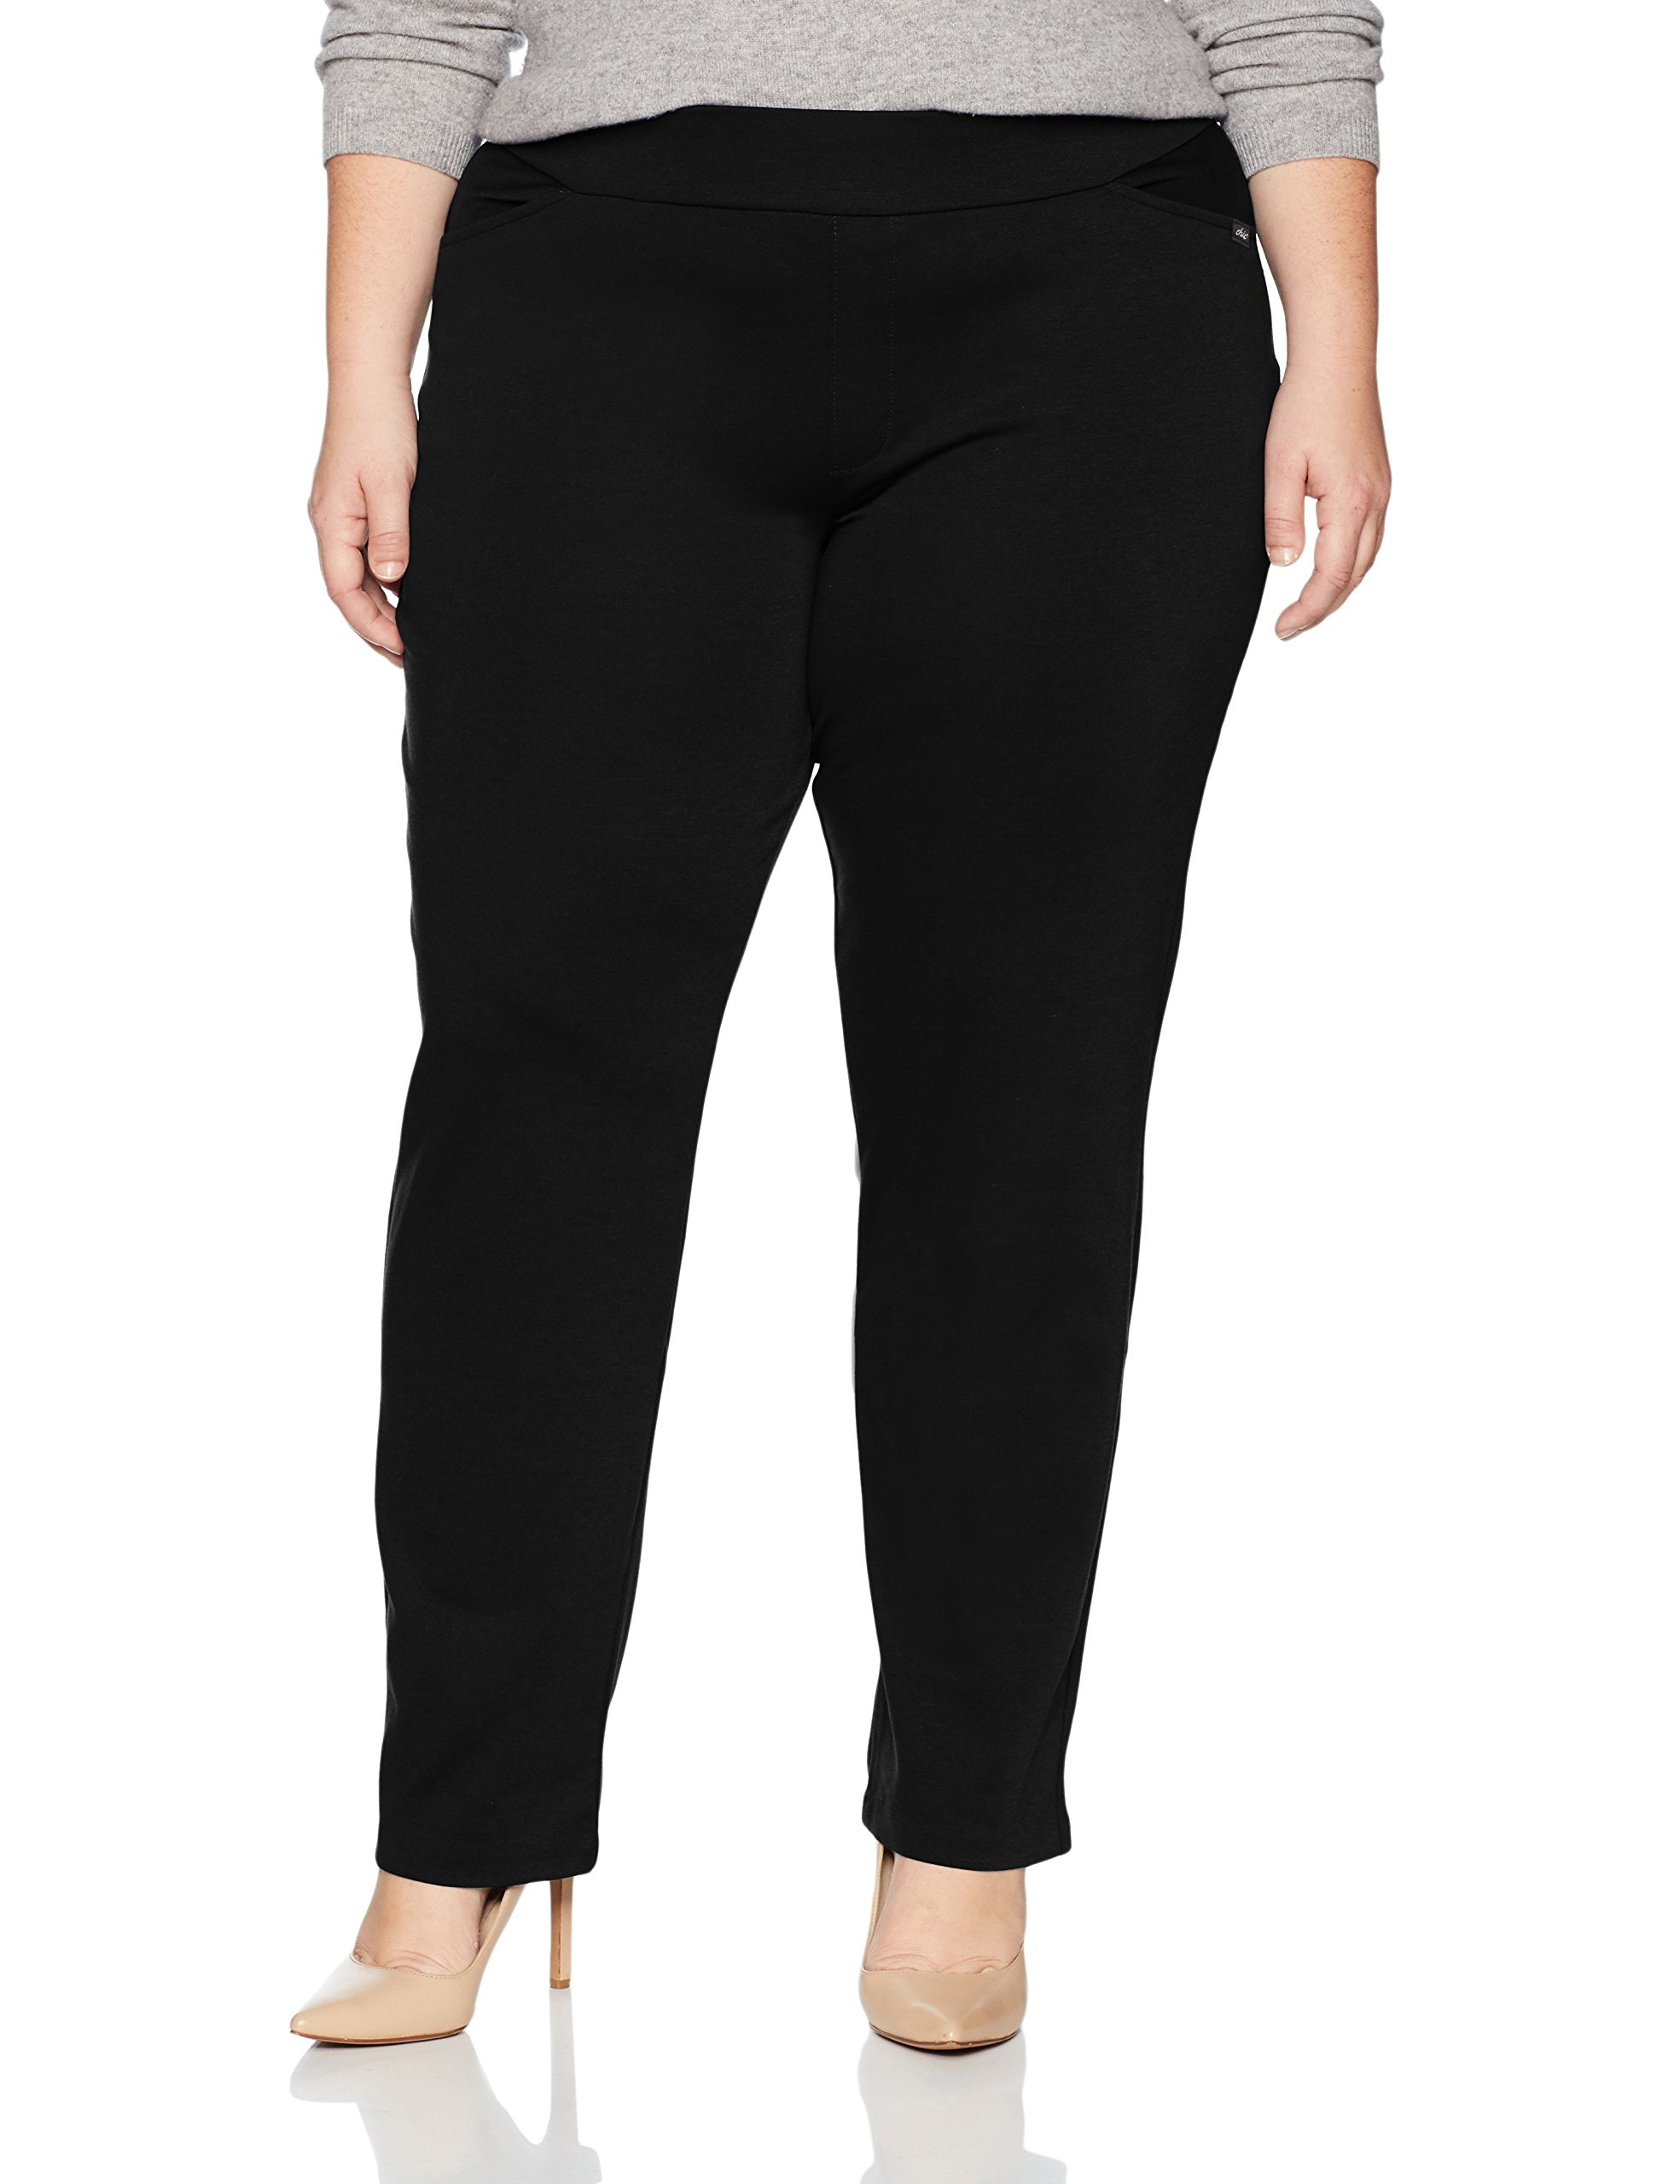 Chic Classic Collection Women's Plus Size Knit Pull-on Pant, Black, 16P